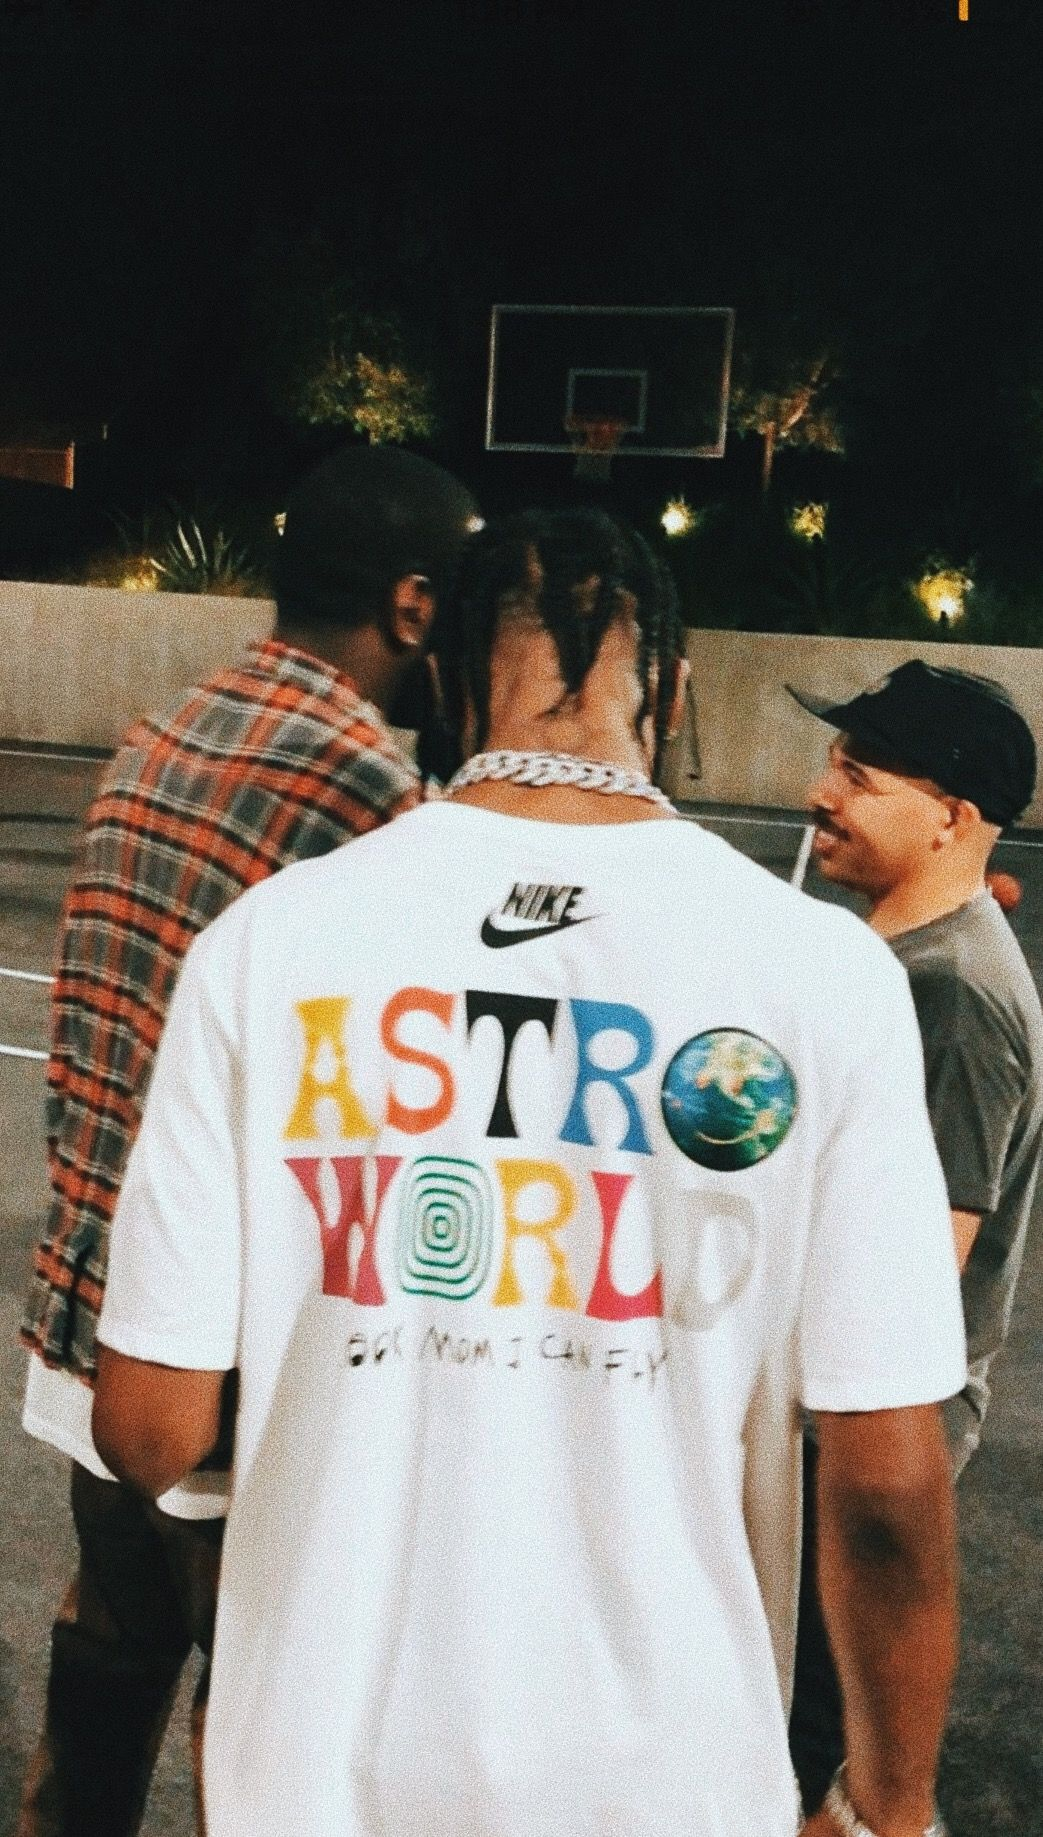 c7635288 I love travis and the whole astroworld aesthetic SM!! | DZ in 2019 ...